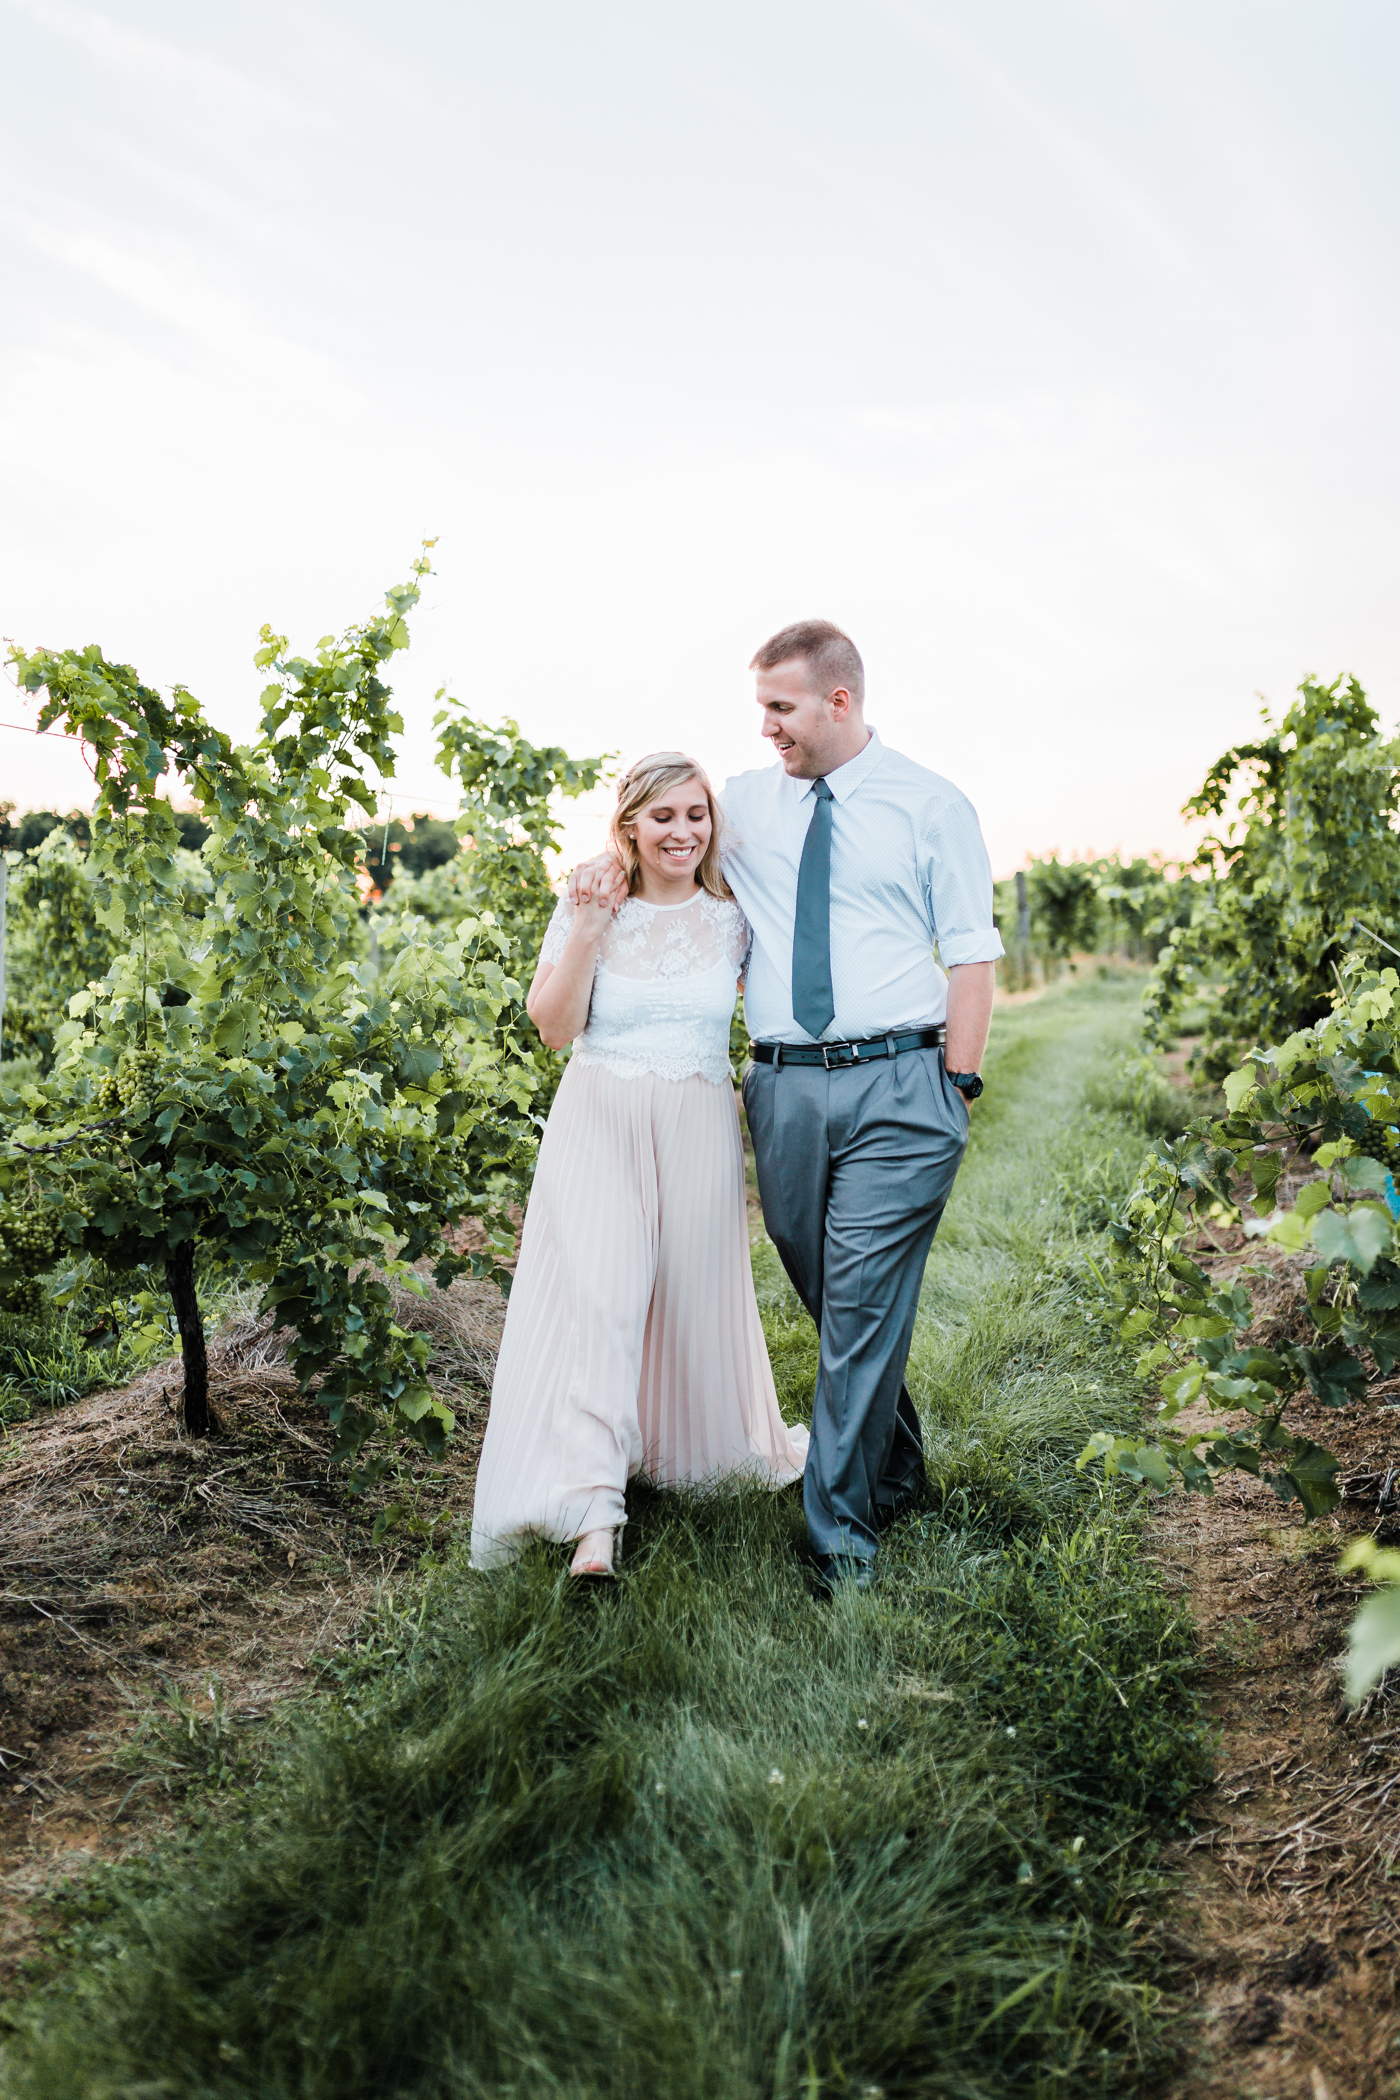 couple walking together during golden hour - winery engagement session inspiration